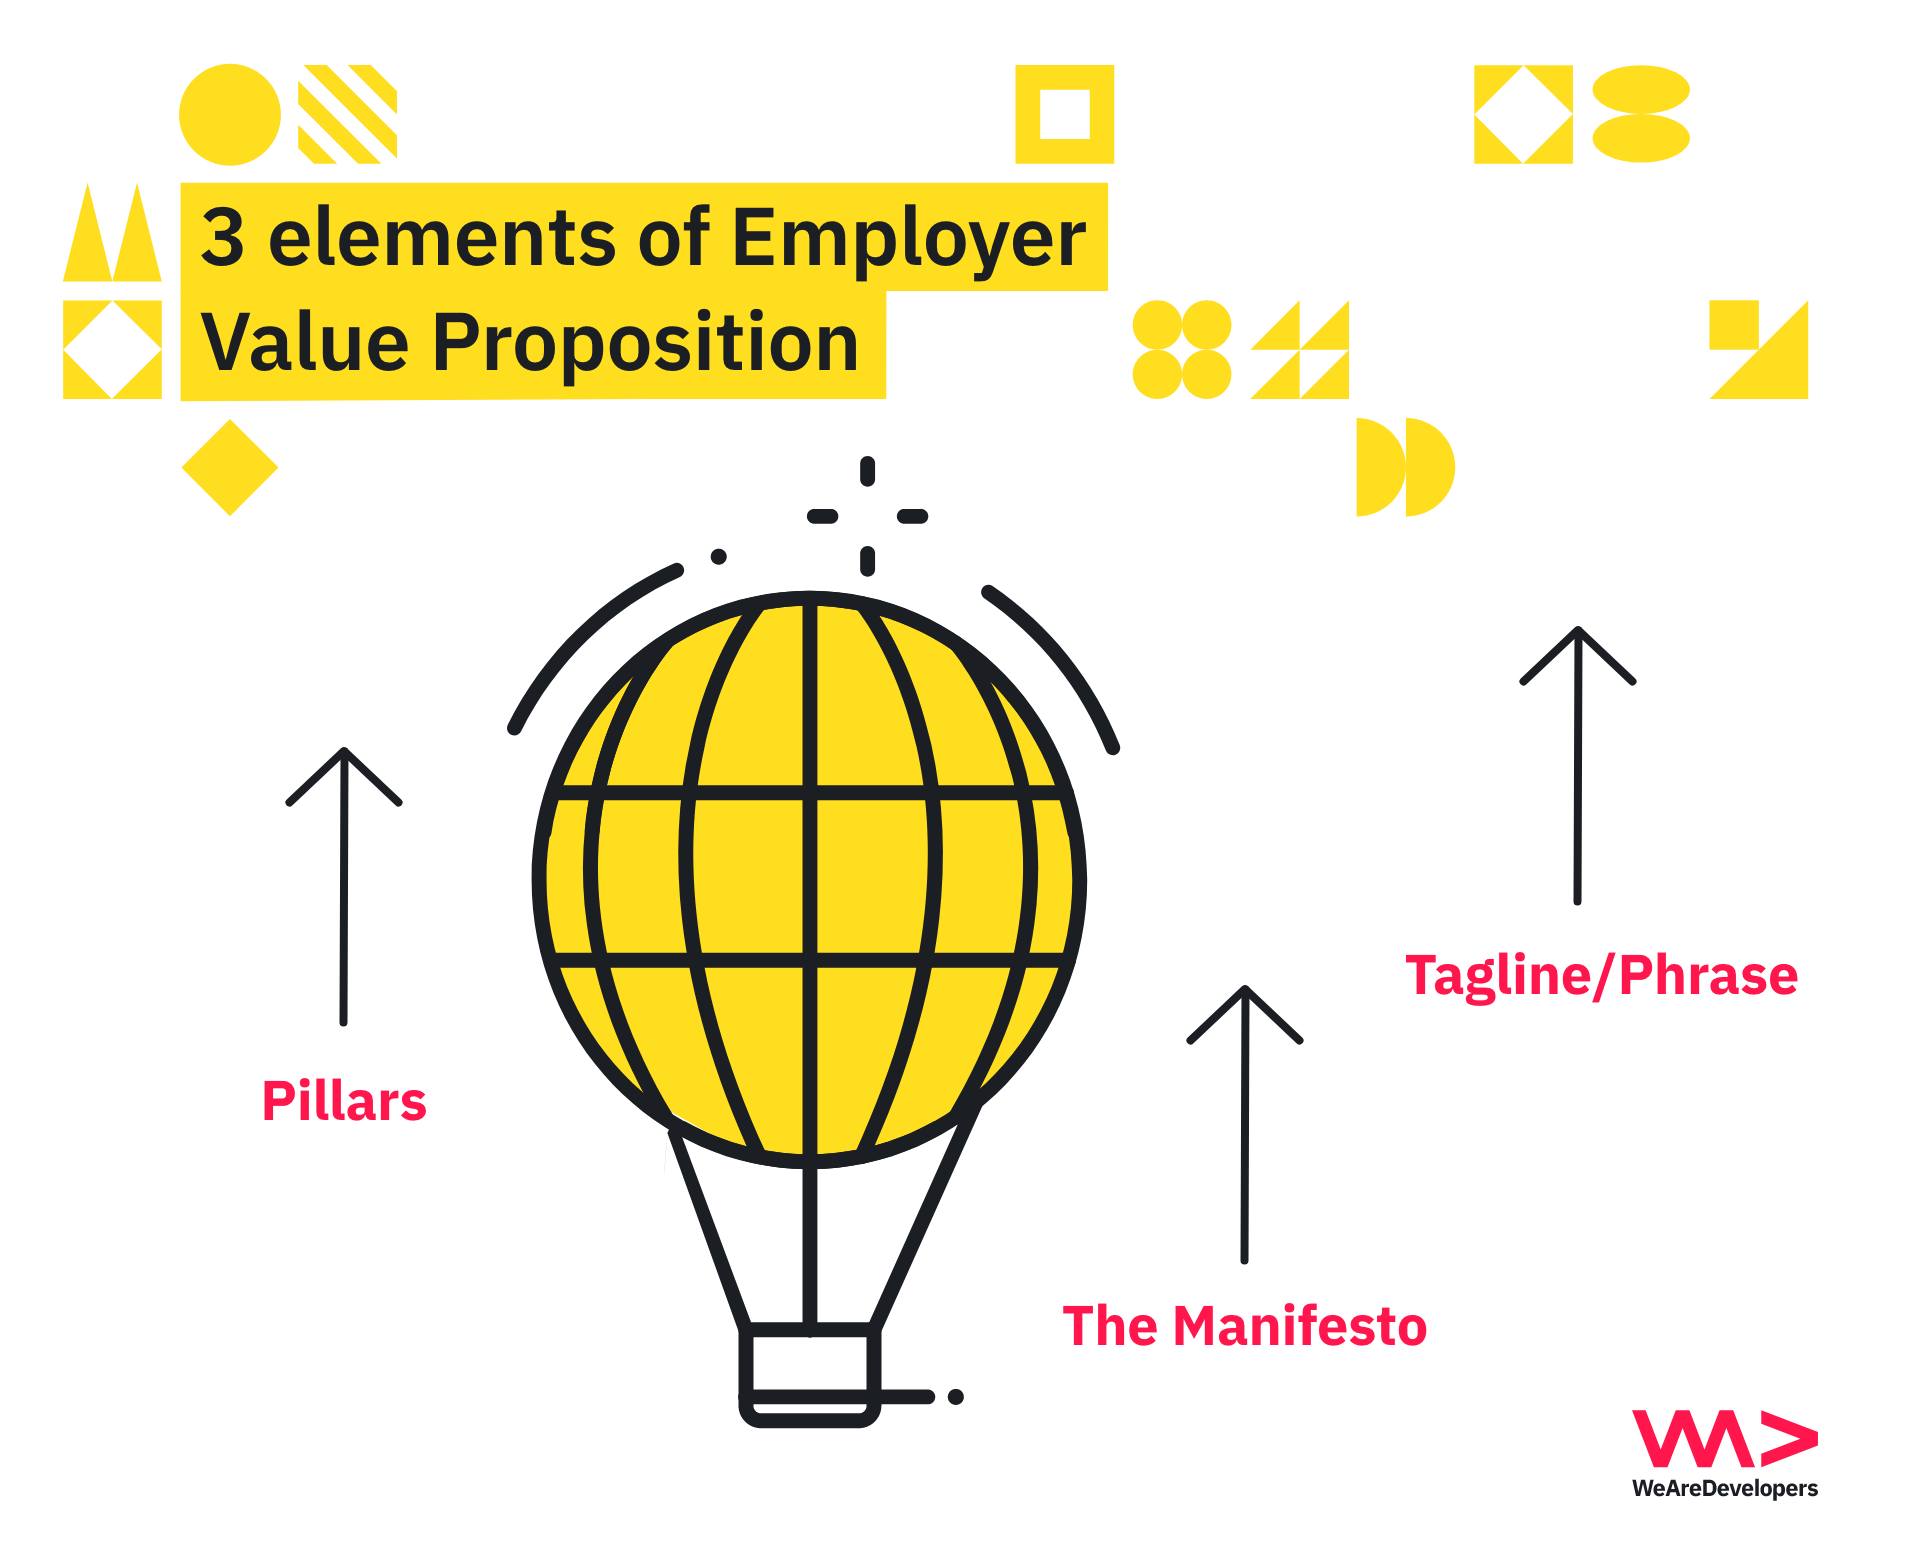 employer value proposition elements